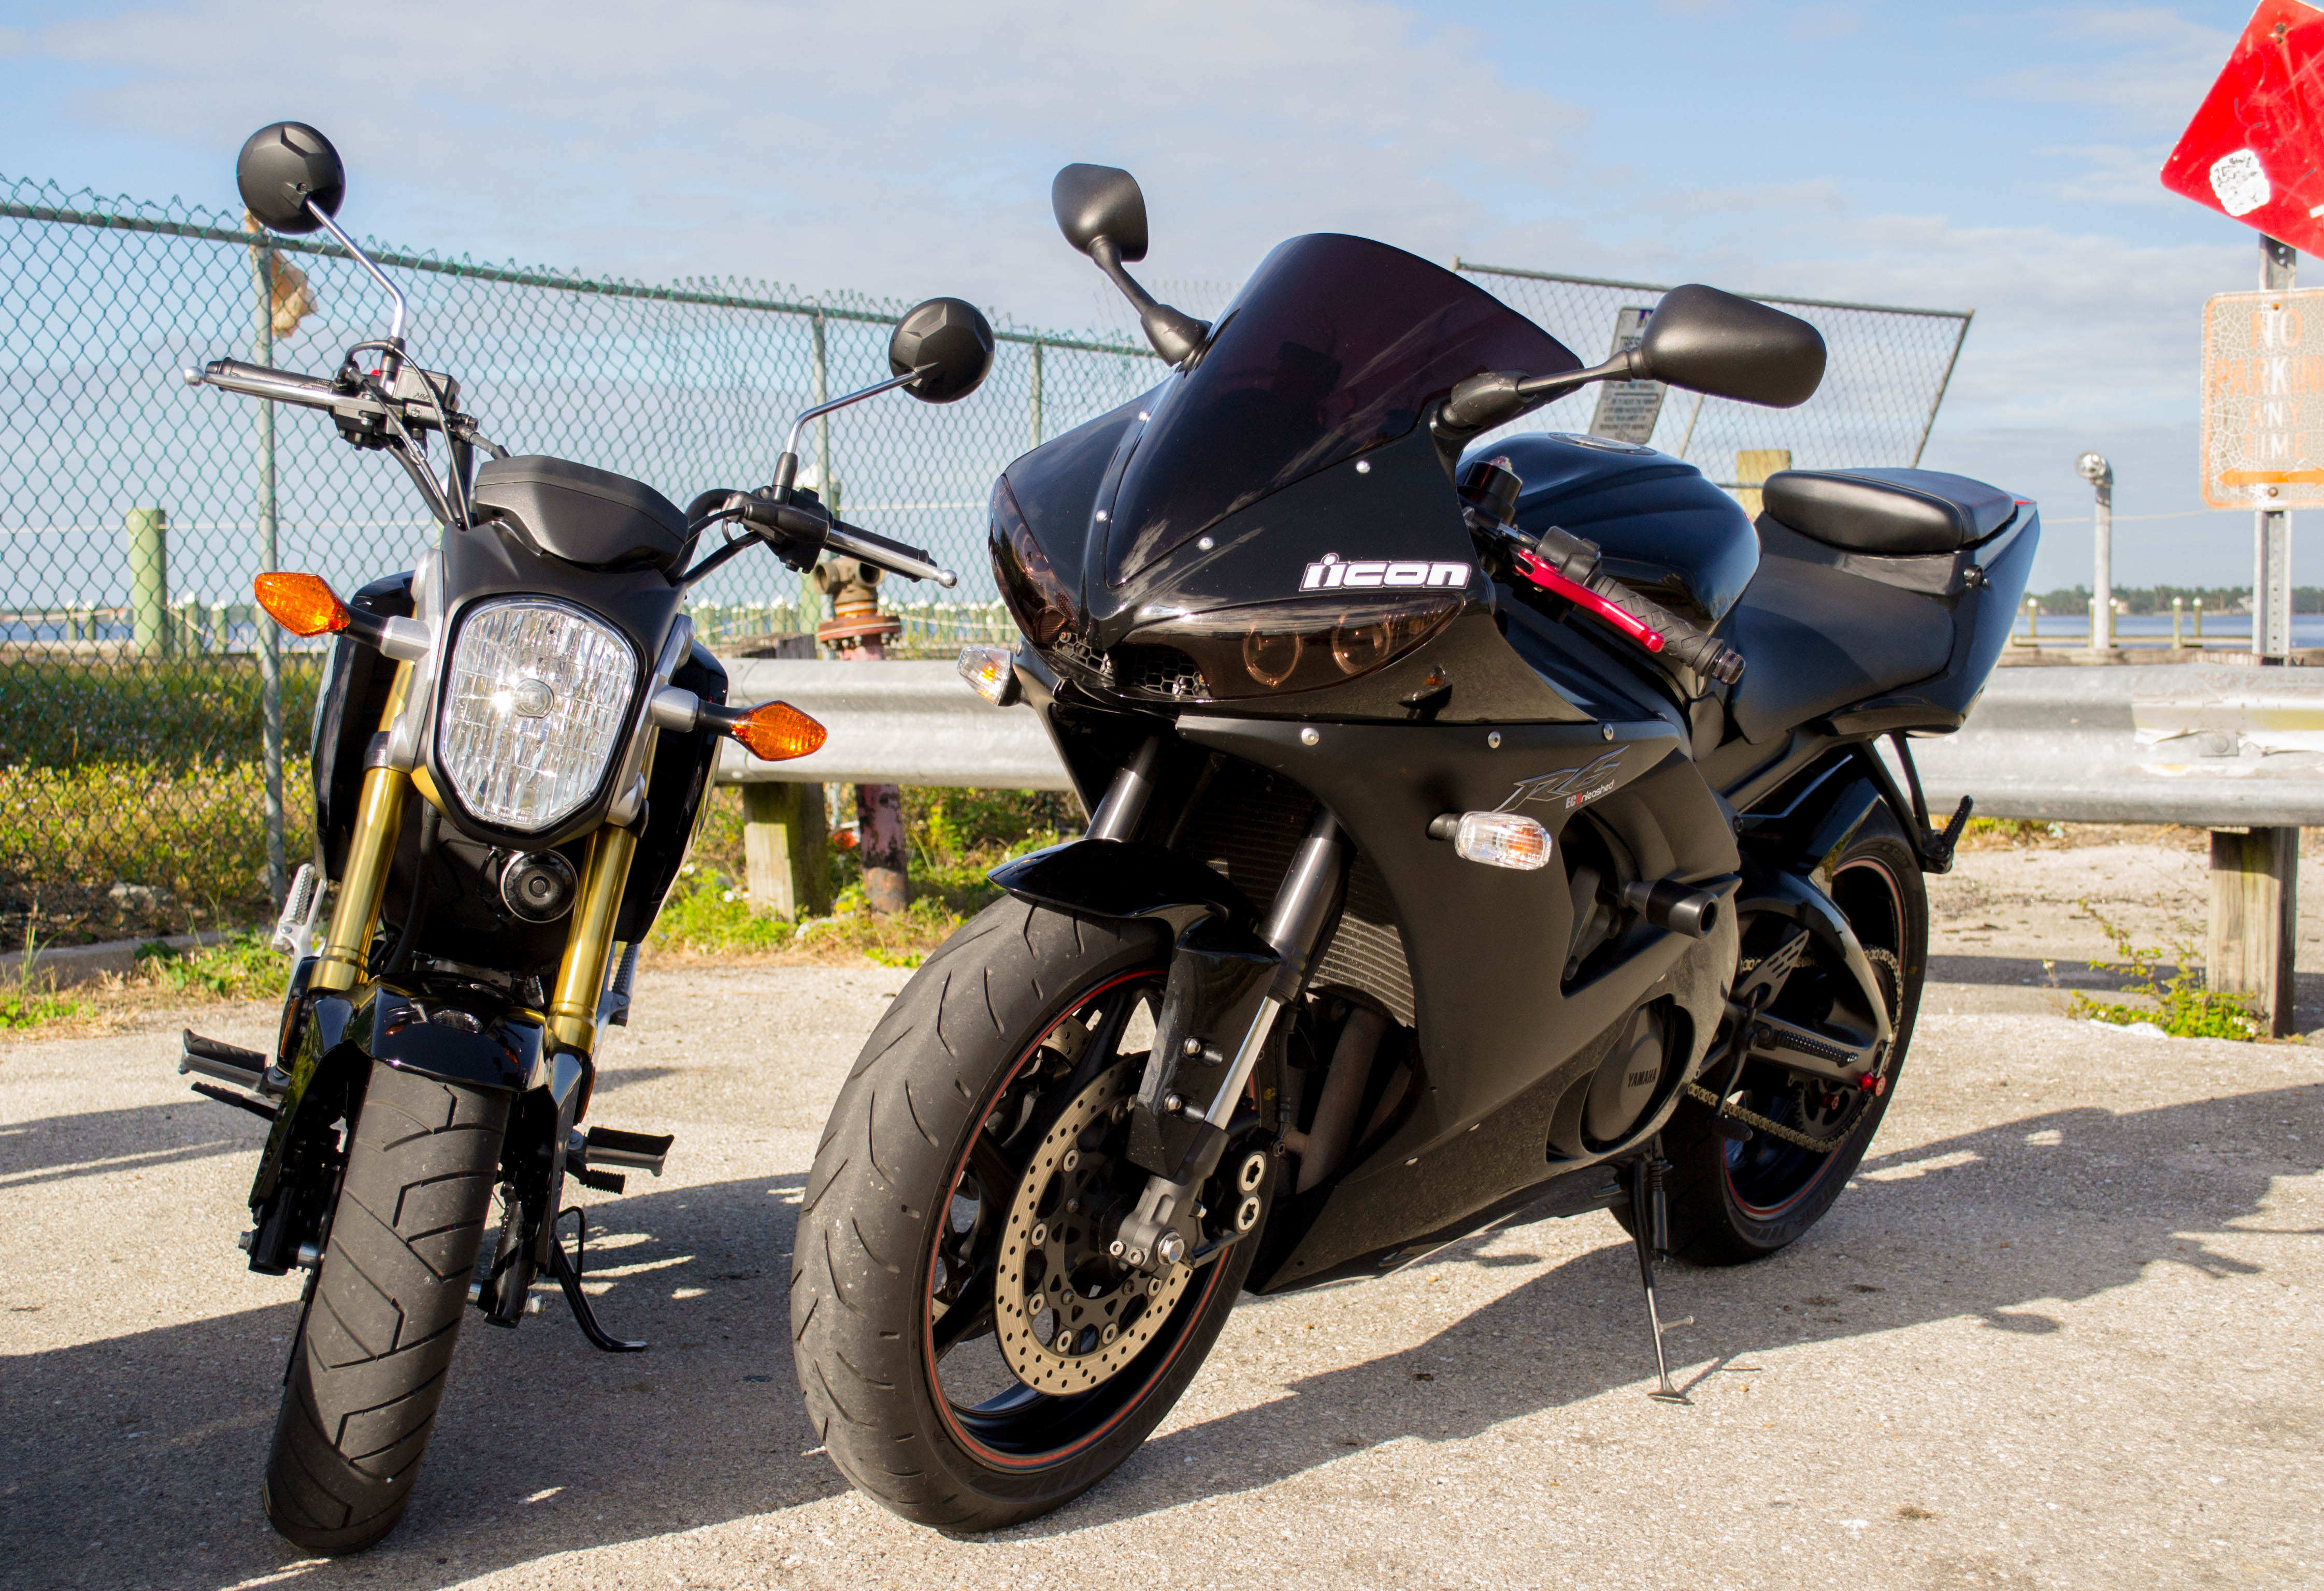 Steady Garage's First Look: 2014 Honda Grom 125 - Honda ... |Honda Grom Size